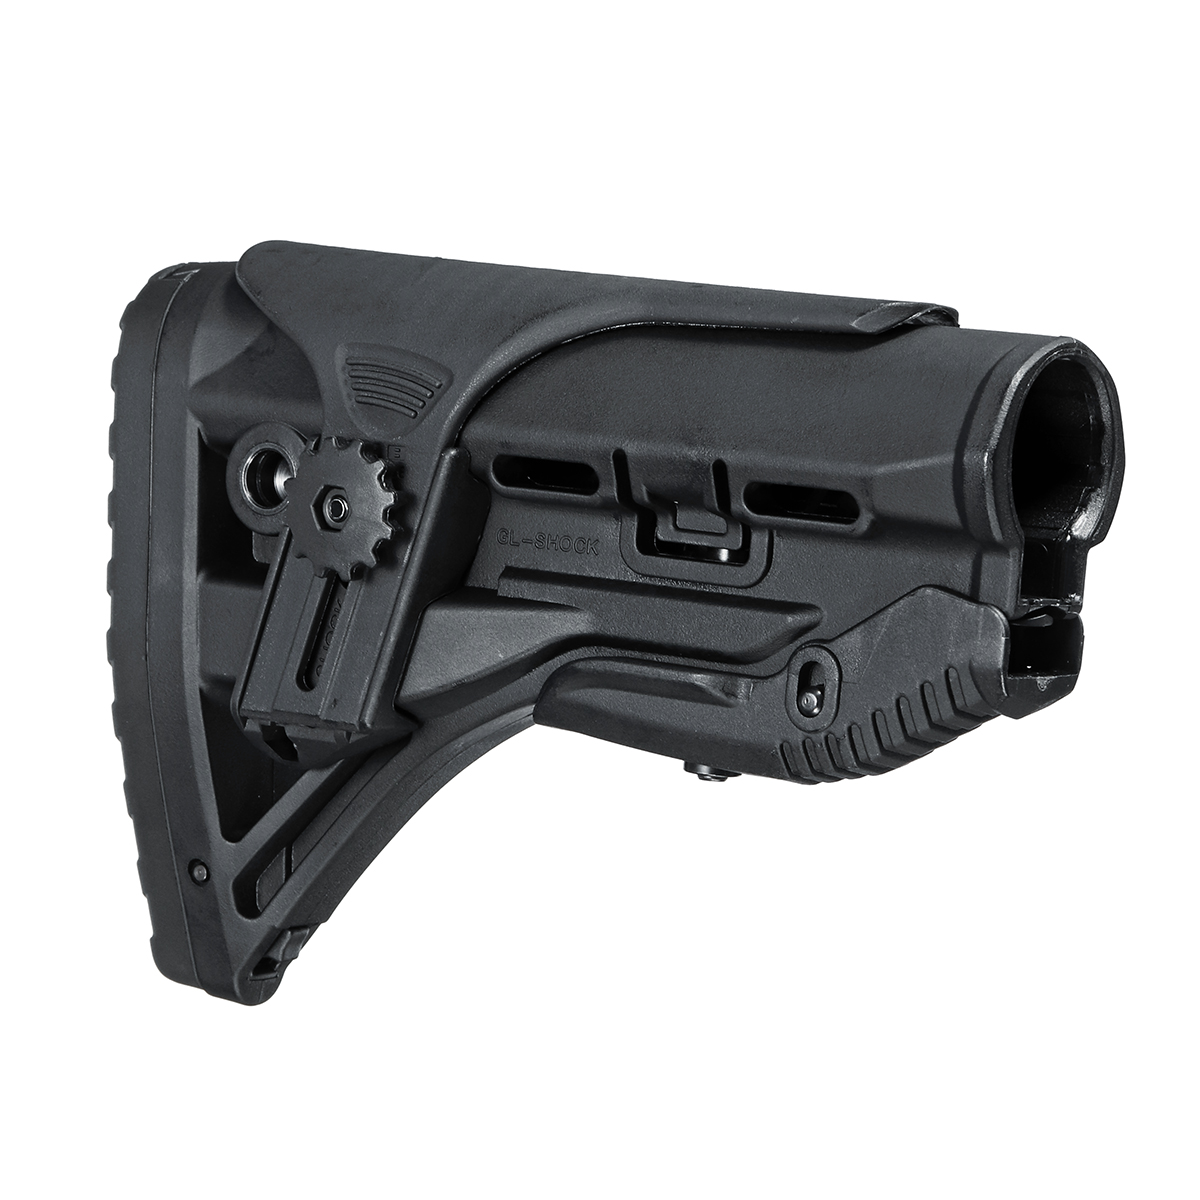 FAB Tactical Nylon Buttstock for JinMing Gen8 M4A1 Replacement Accessories